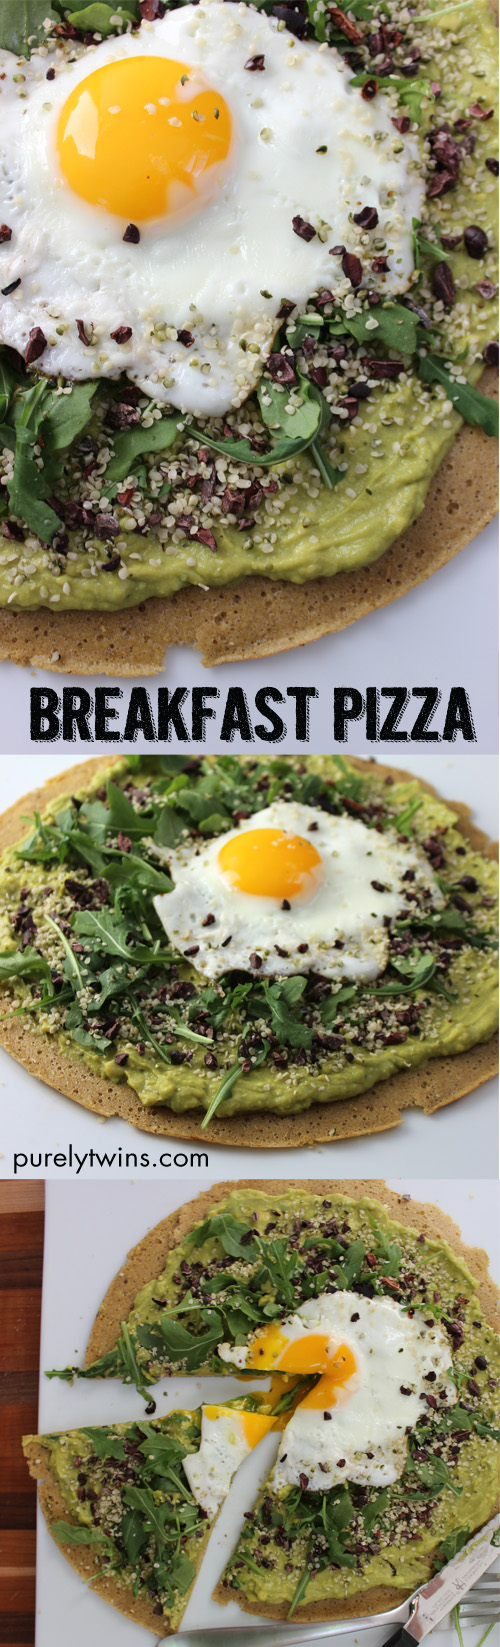 Gluten-free, grain-free breakfast pizza that will fuel you for your busy day ahead. Quick and healthy breakfast pizza. Made from real foods. A warm crust topped with creamy avocado cream, topped with spicy peppery-mustardy arugula, savory hemp seeds, runny egg and cacao nibs for fun.